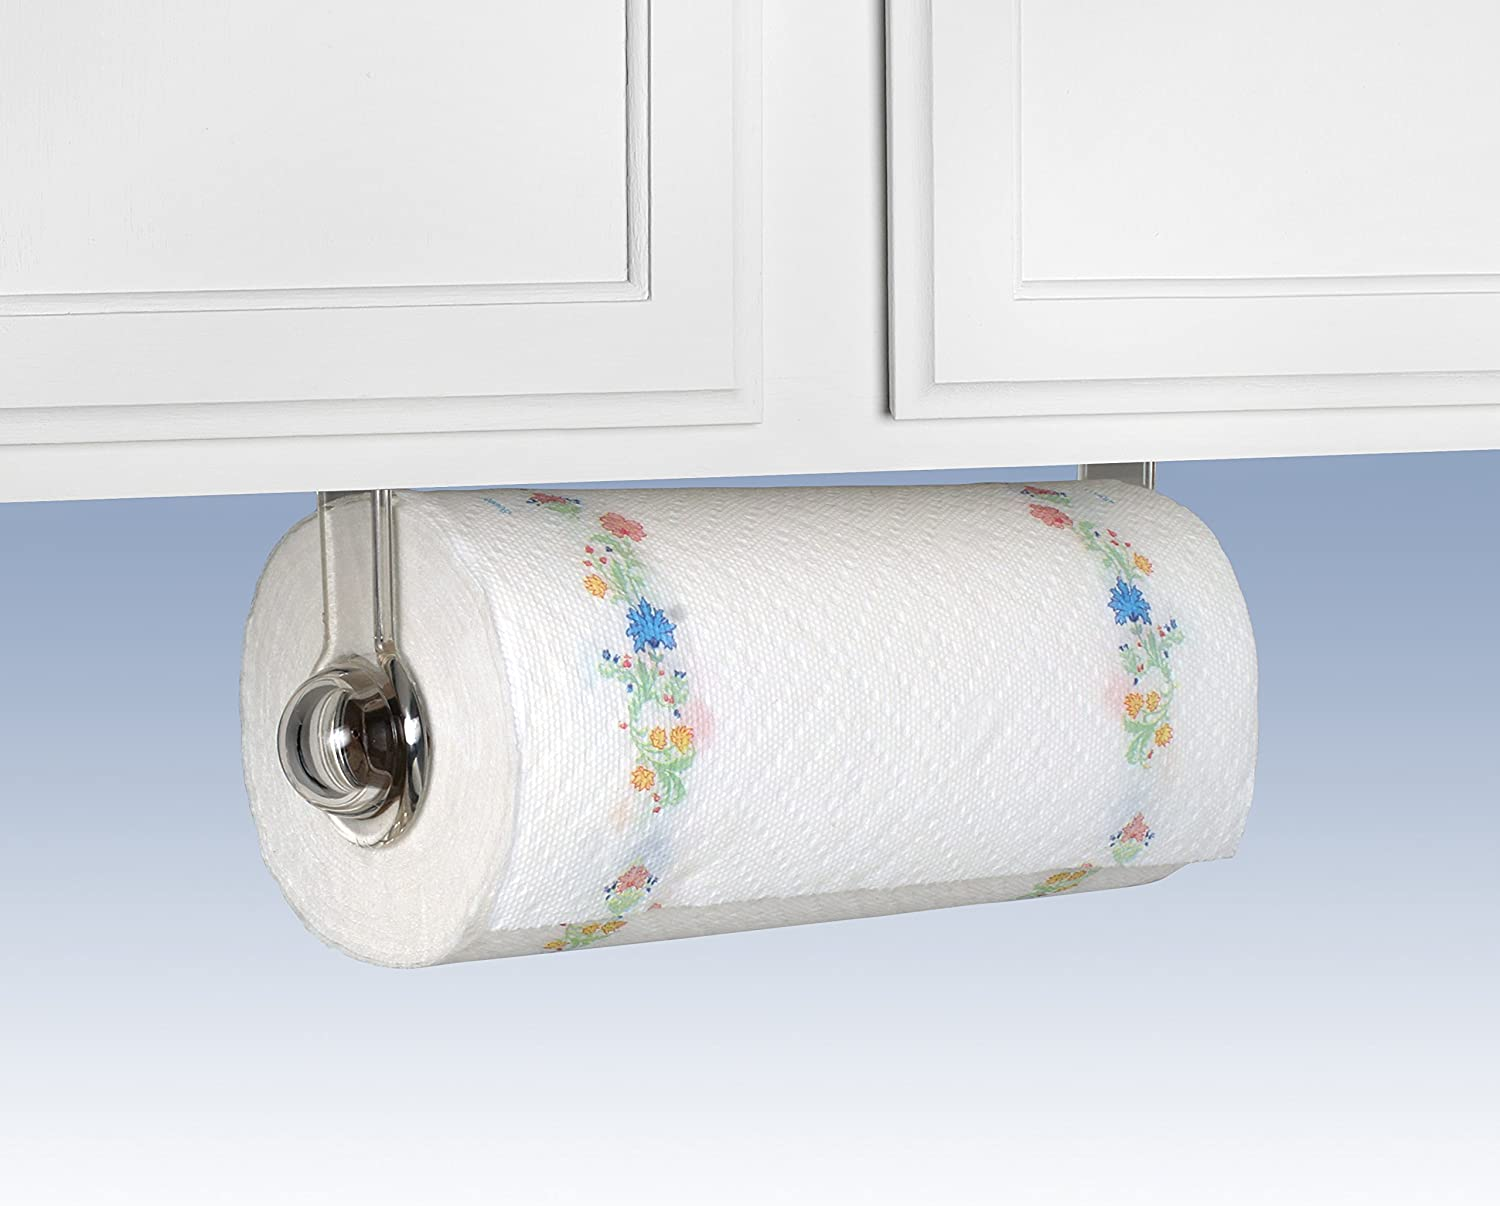 Amazon.com : Spectrum Diversified Wall Mount Paper Towel Holder, Clear :  Everything Else